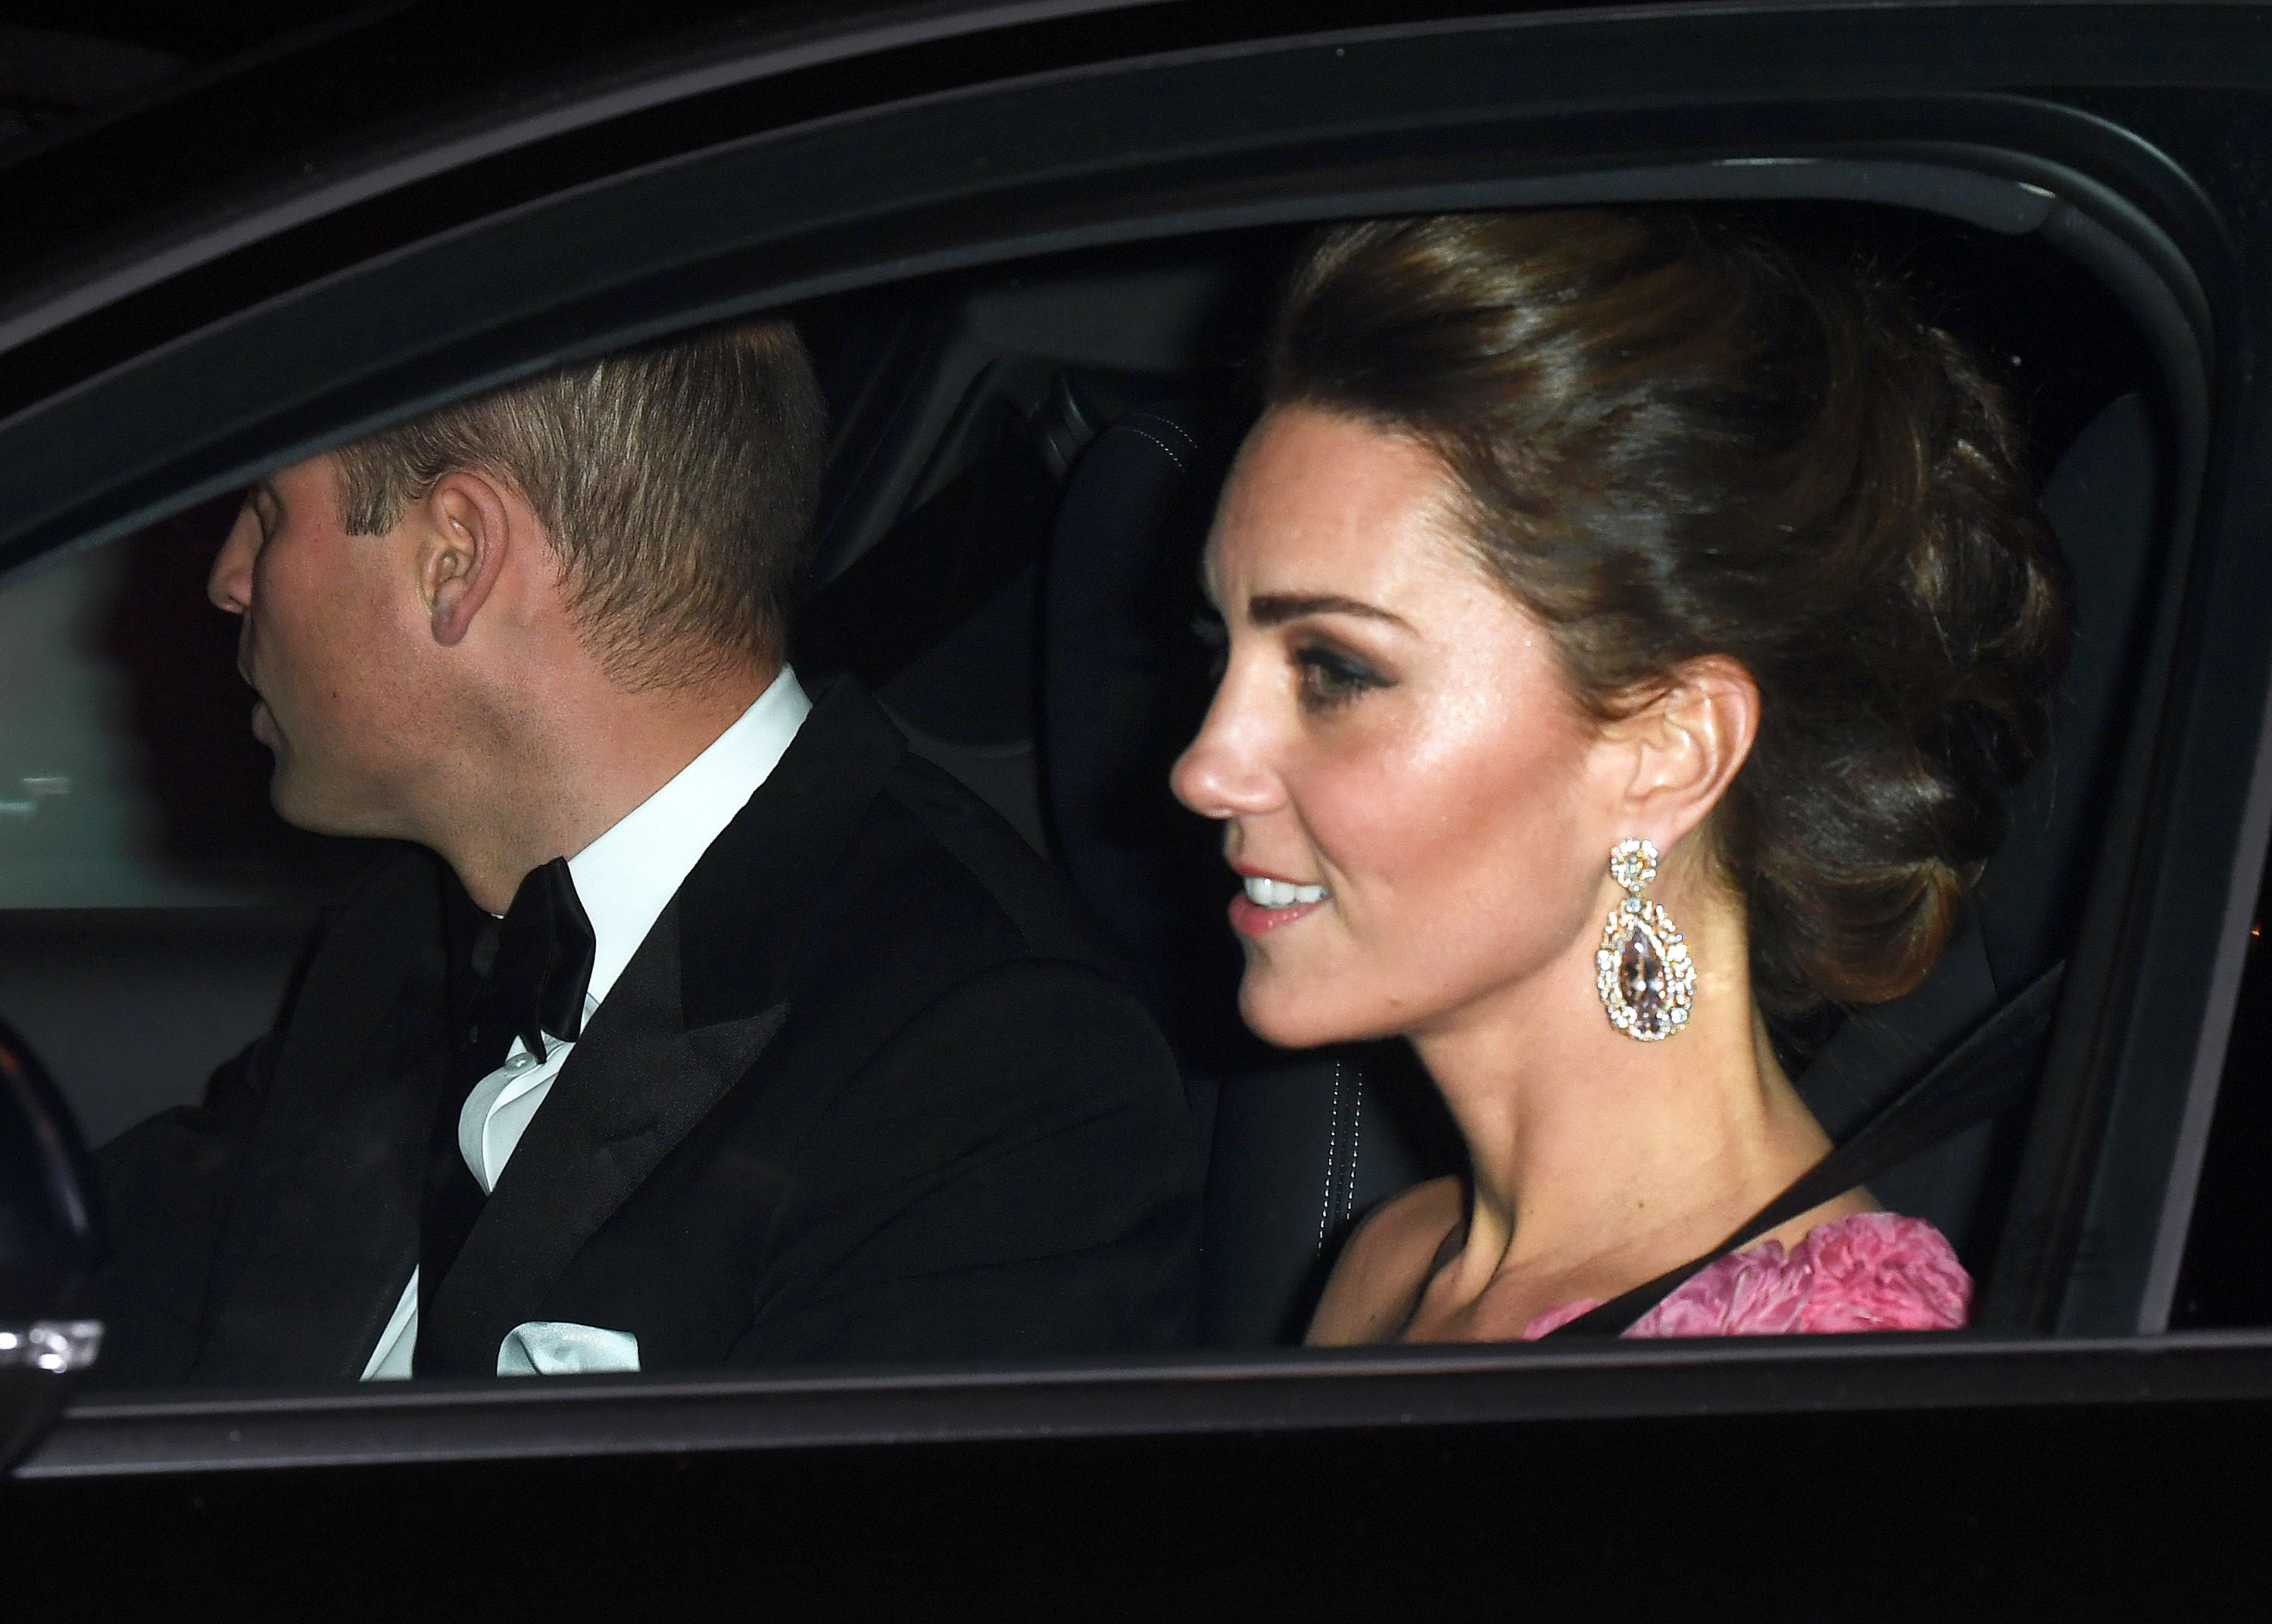 Kate Middleton Wears Pink Gown And Jeweled Earrings To Prince Charless 70th Birthday With William